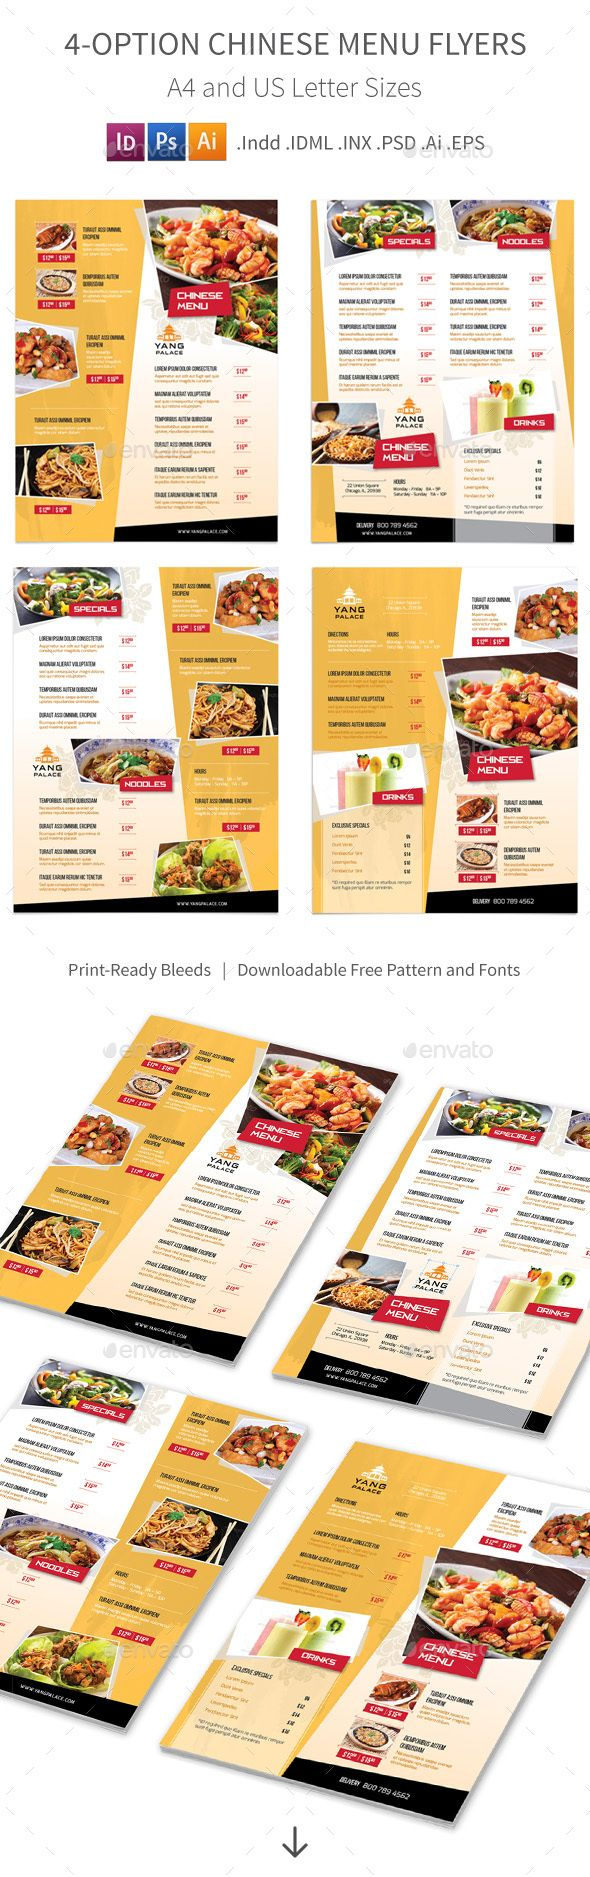 chinese restaurant menu flyers 4 options ai illustrator chinese restaurant and flyer template. Black Bedroom Furniture Sets. Home Design Ideas